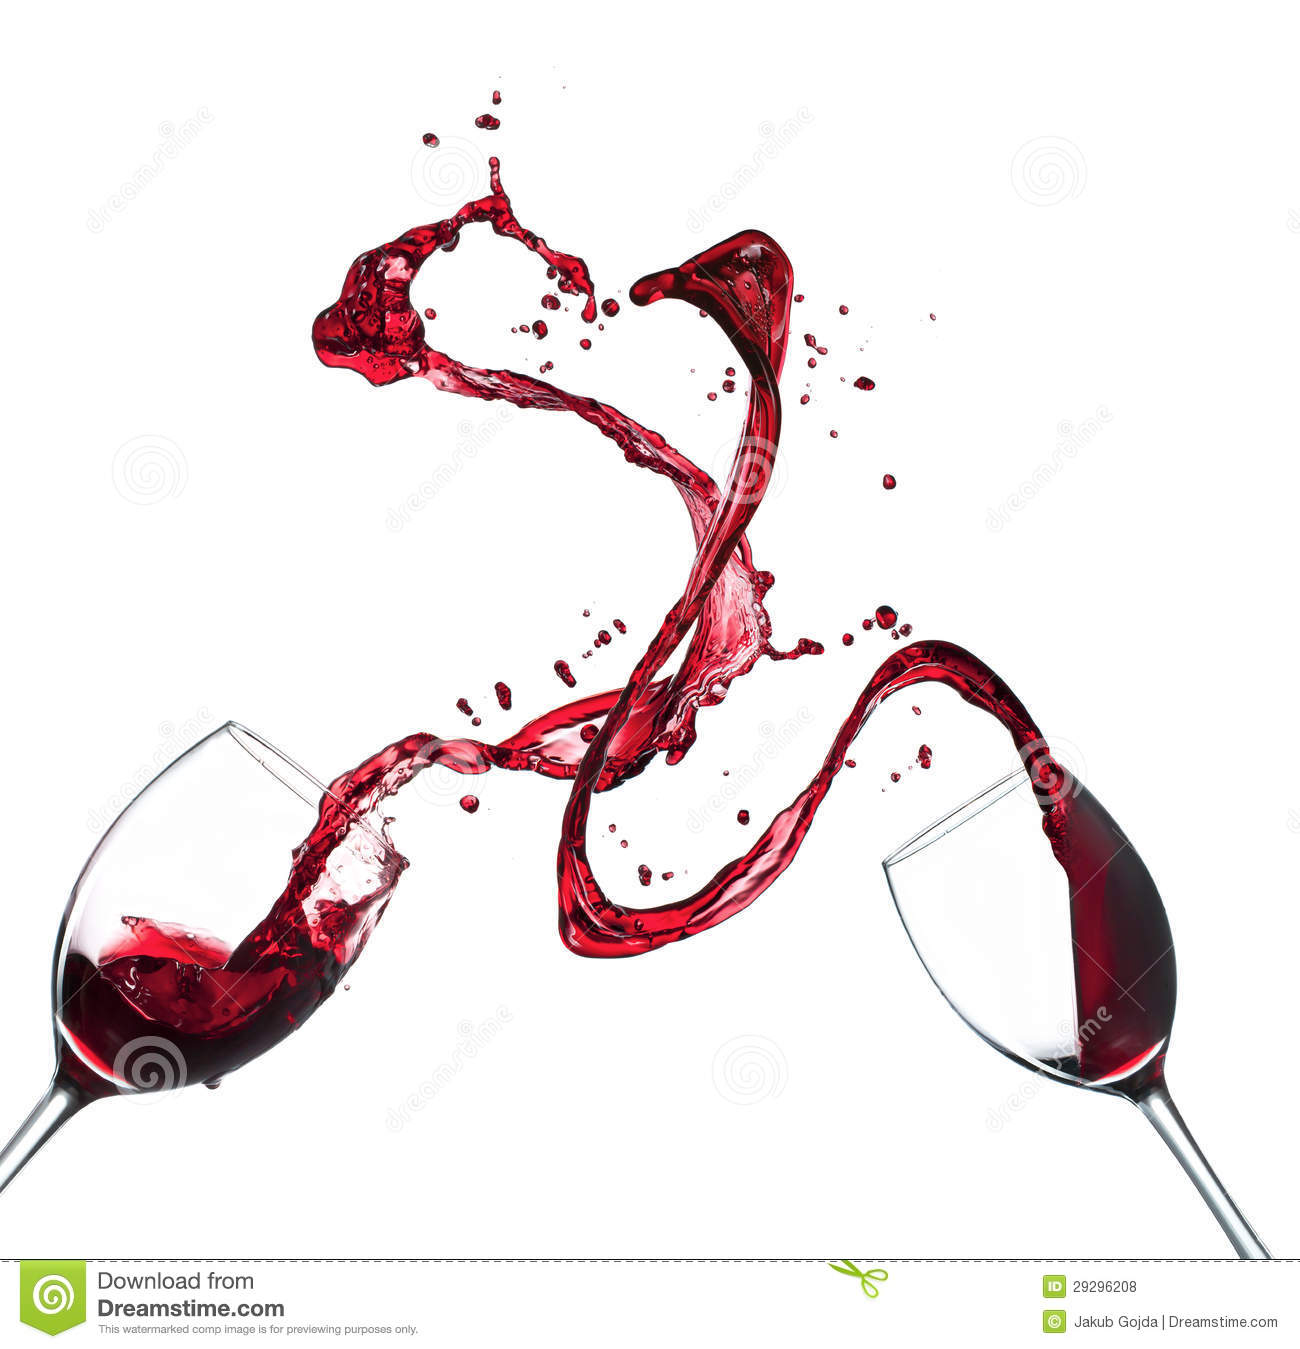 Cool white and red background - Red Wine Splash Royalty Free Stock Photos Image 29296208